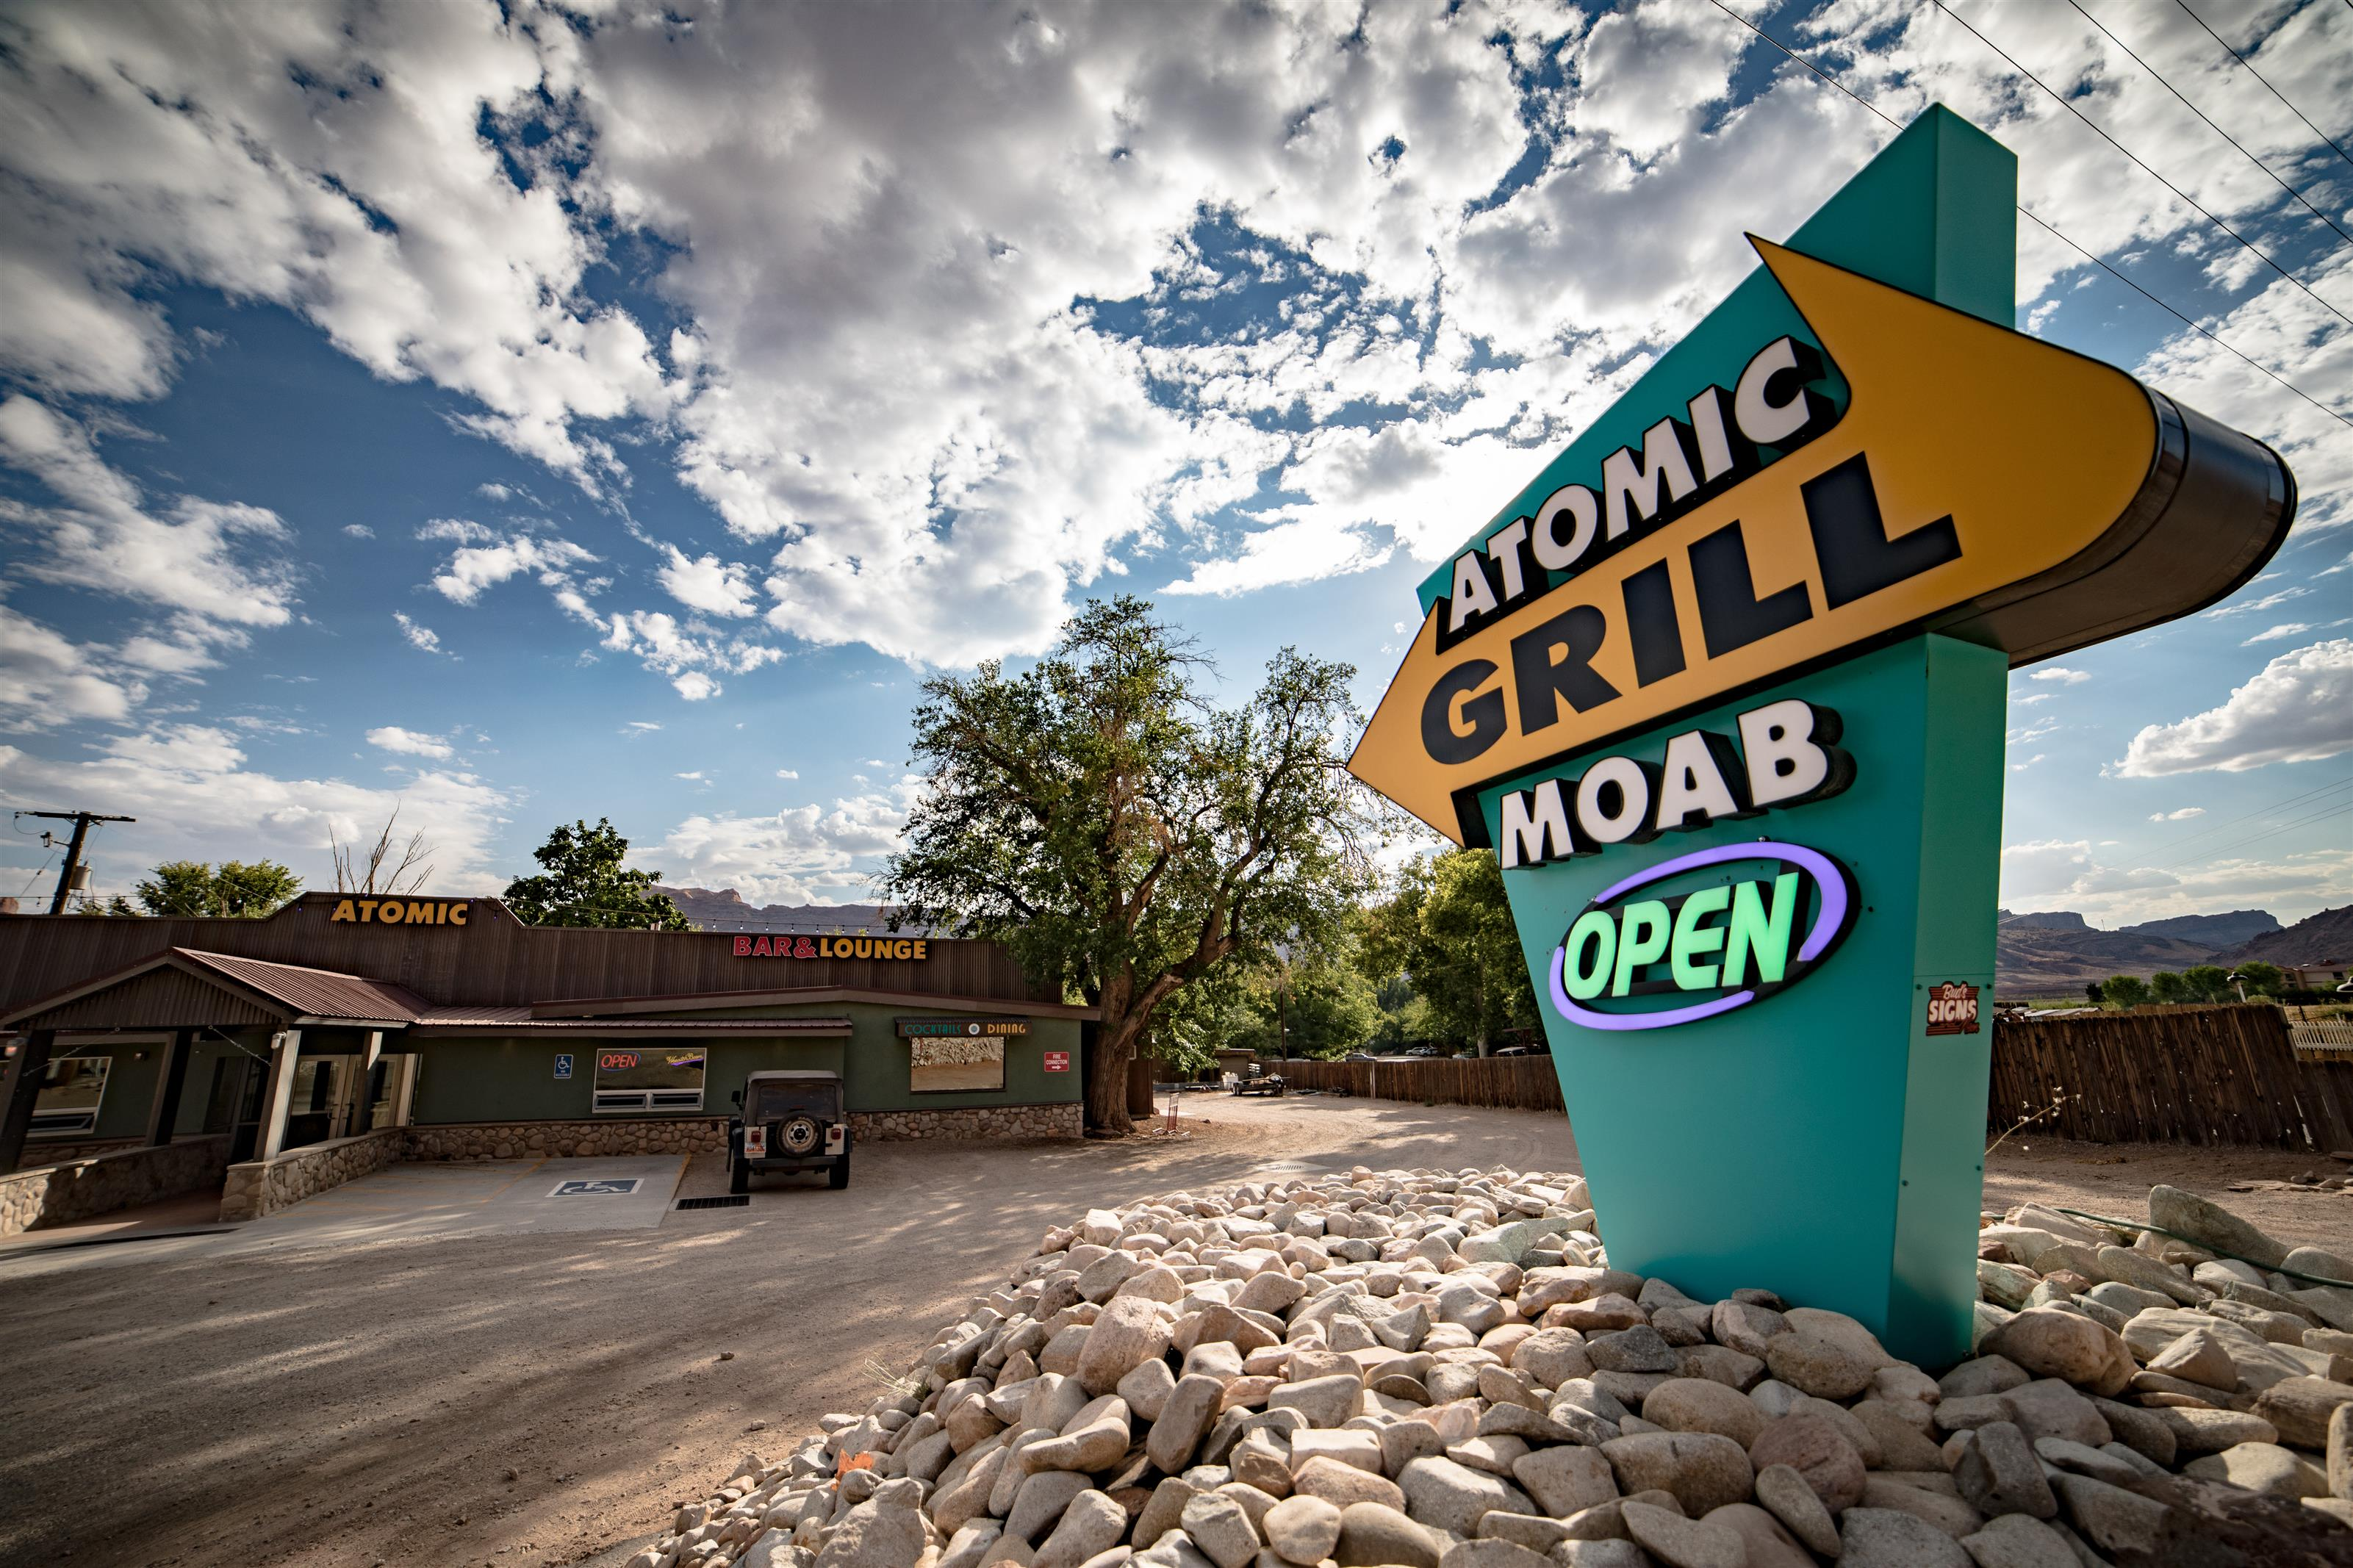 """Atomic Grill Moab"" sign with establishment in the background"